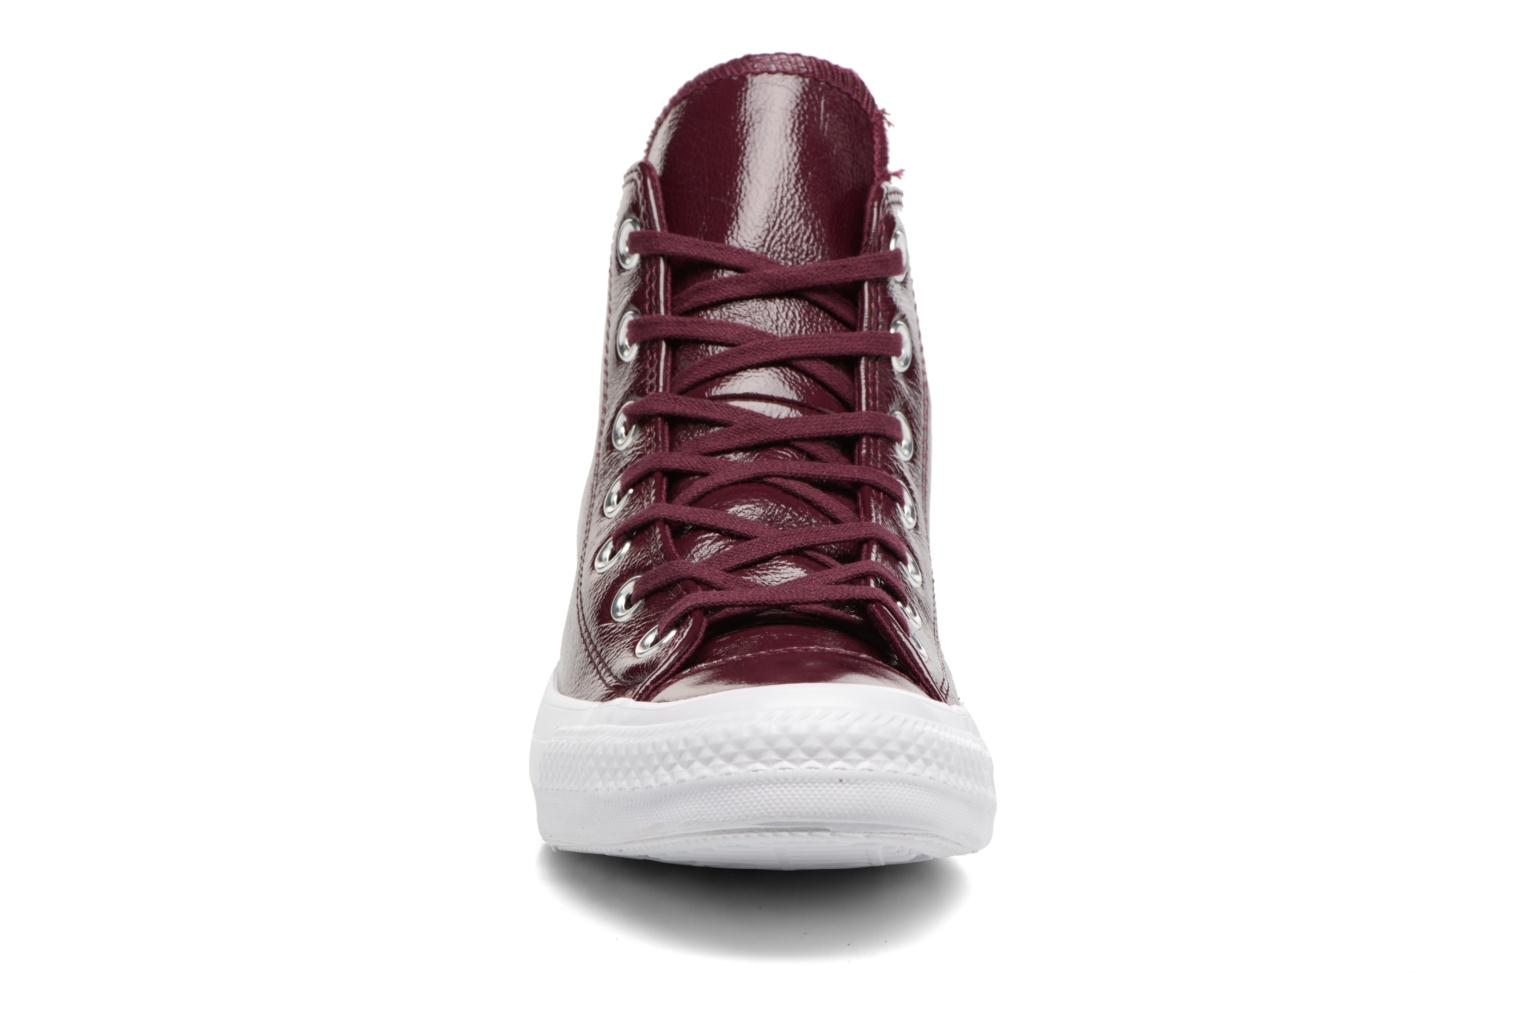 Baskets Converse Chuck Taylor All Star Crinkled Patent Leather Hi Bordeaux vue portées chaussures